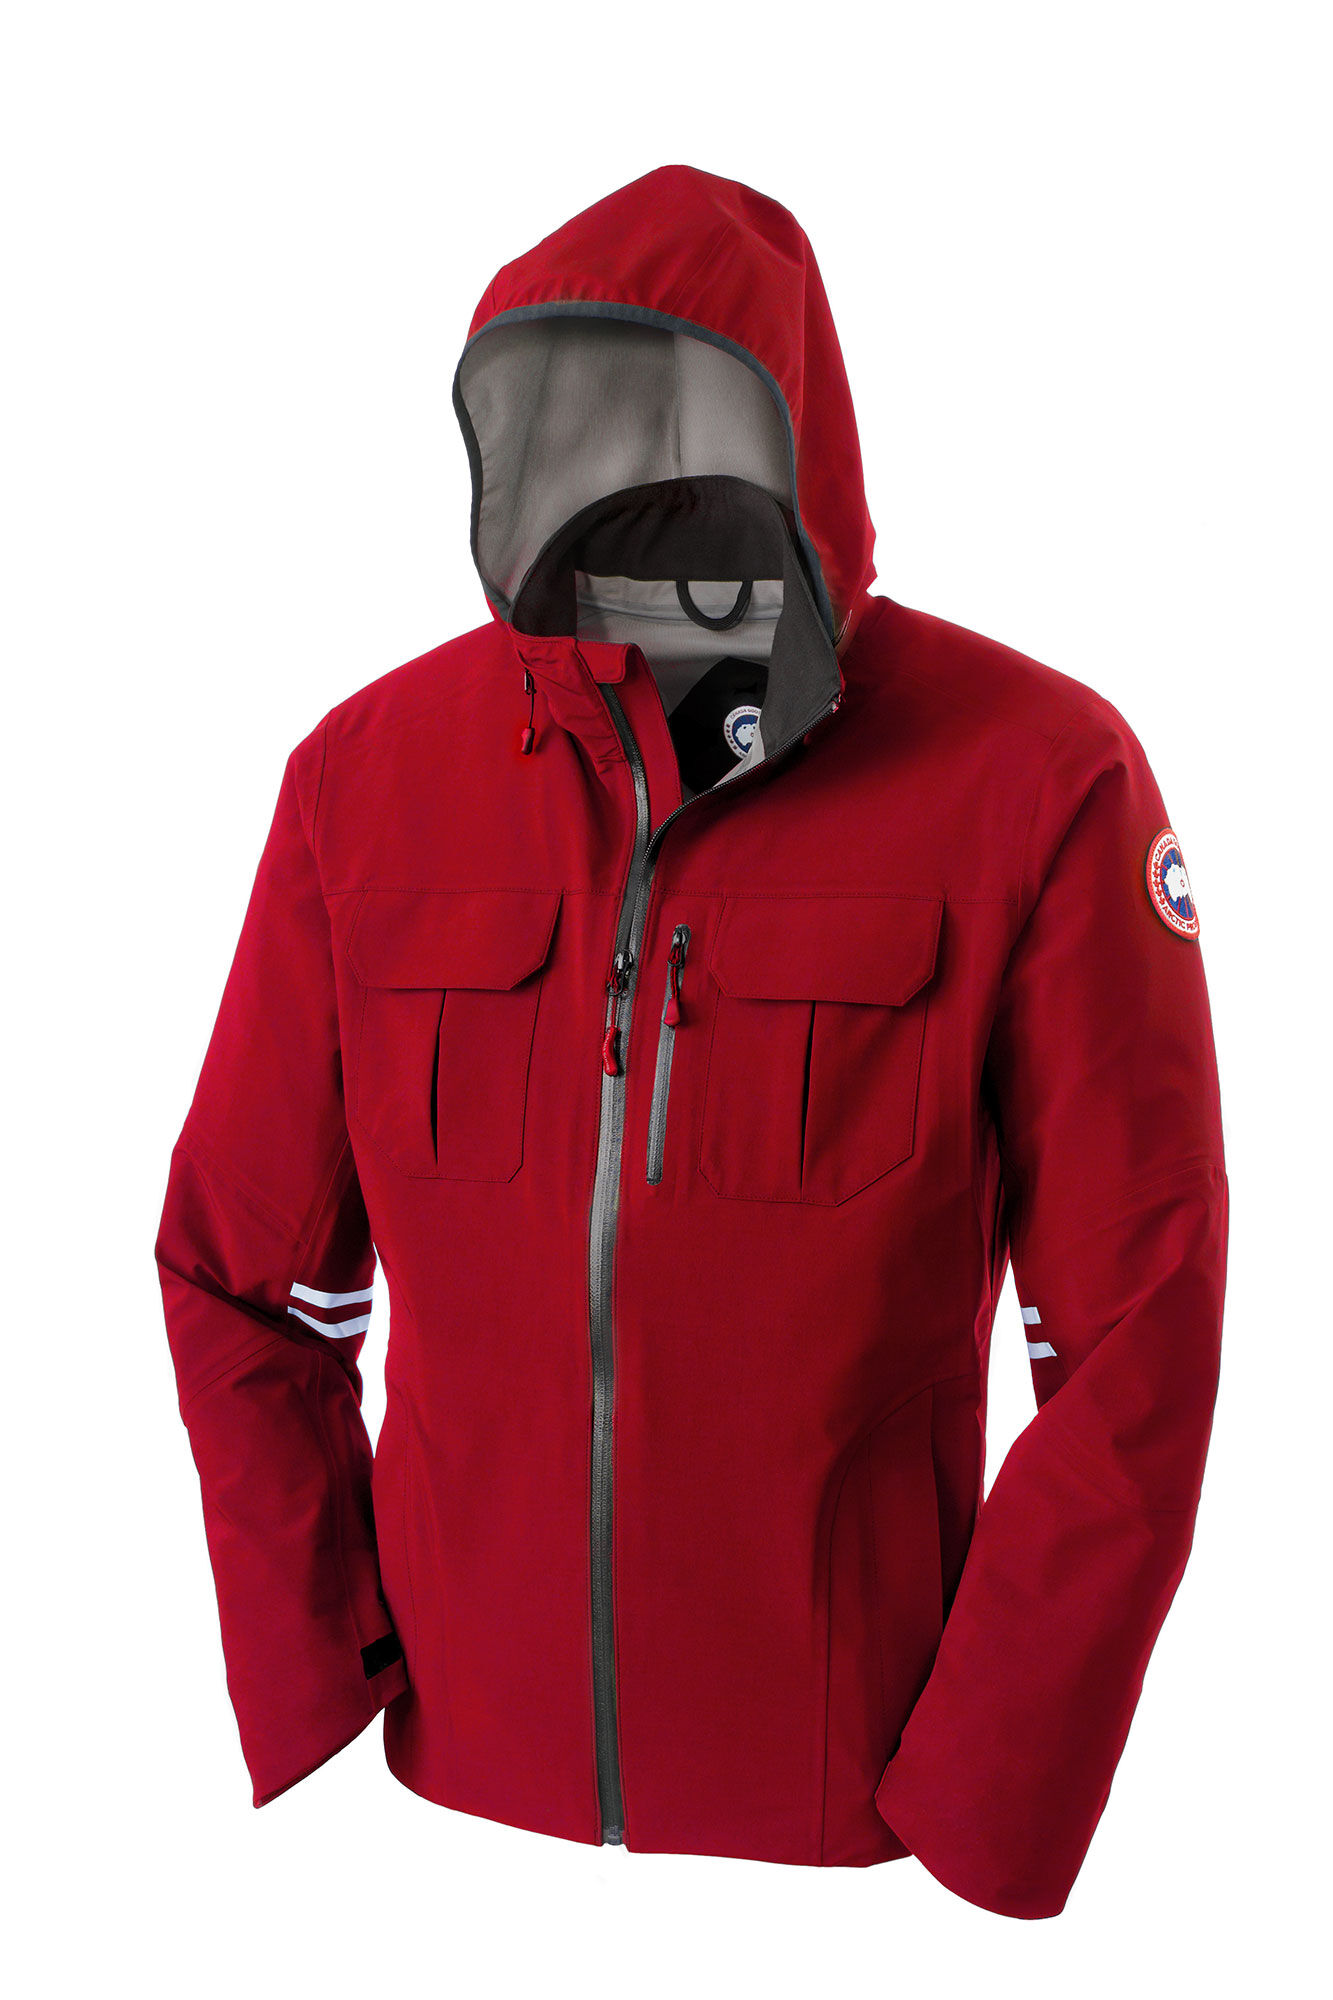 Canada Goose expedition parka outlet price - Men's Technical Shells Moraine Shell Jacket | Canada Goose?